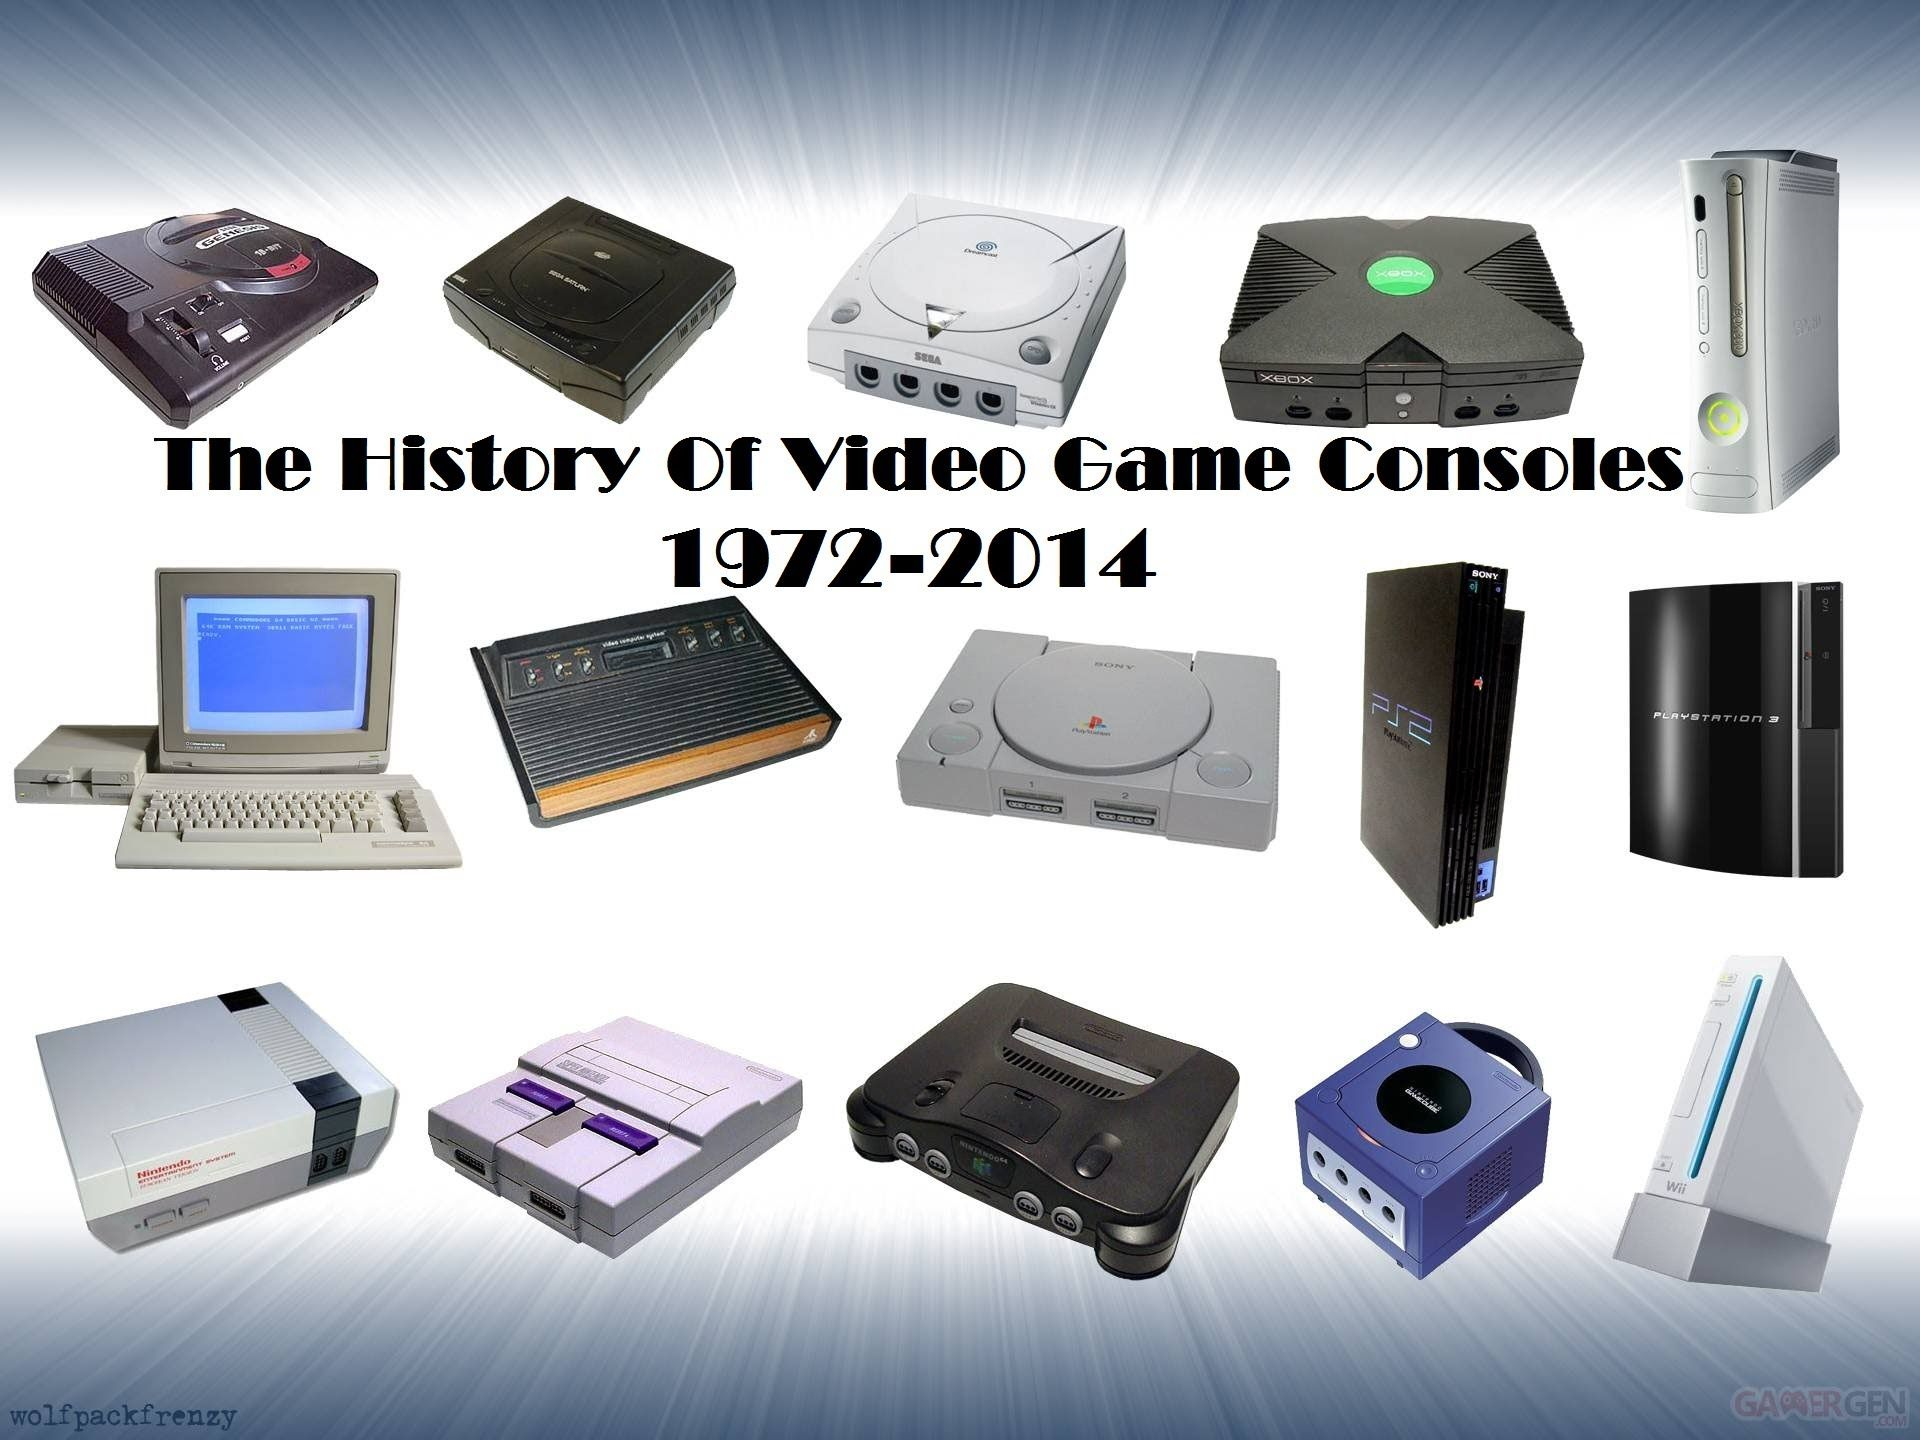 Here is my latest videos, The History Of Video Games